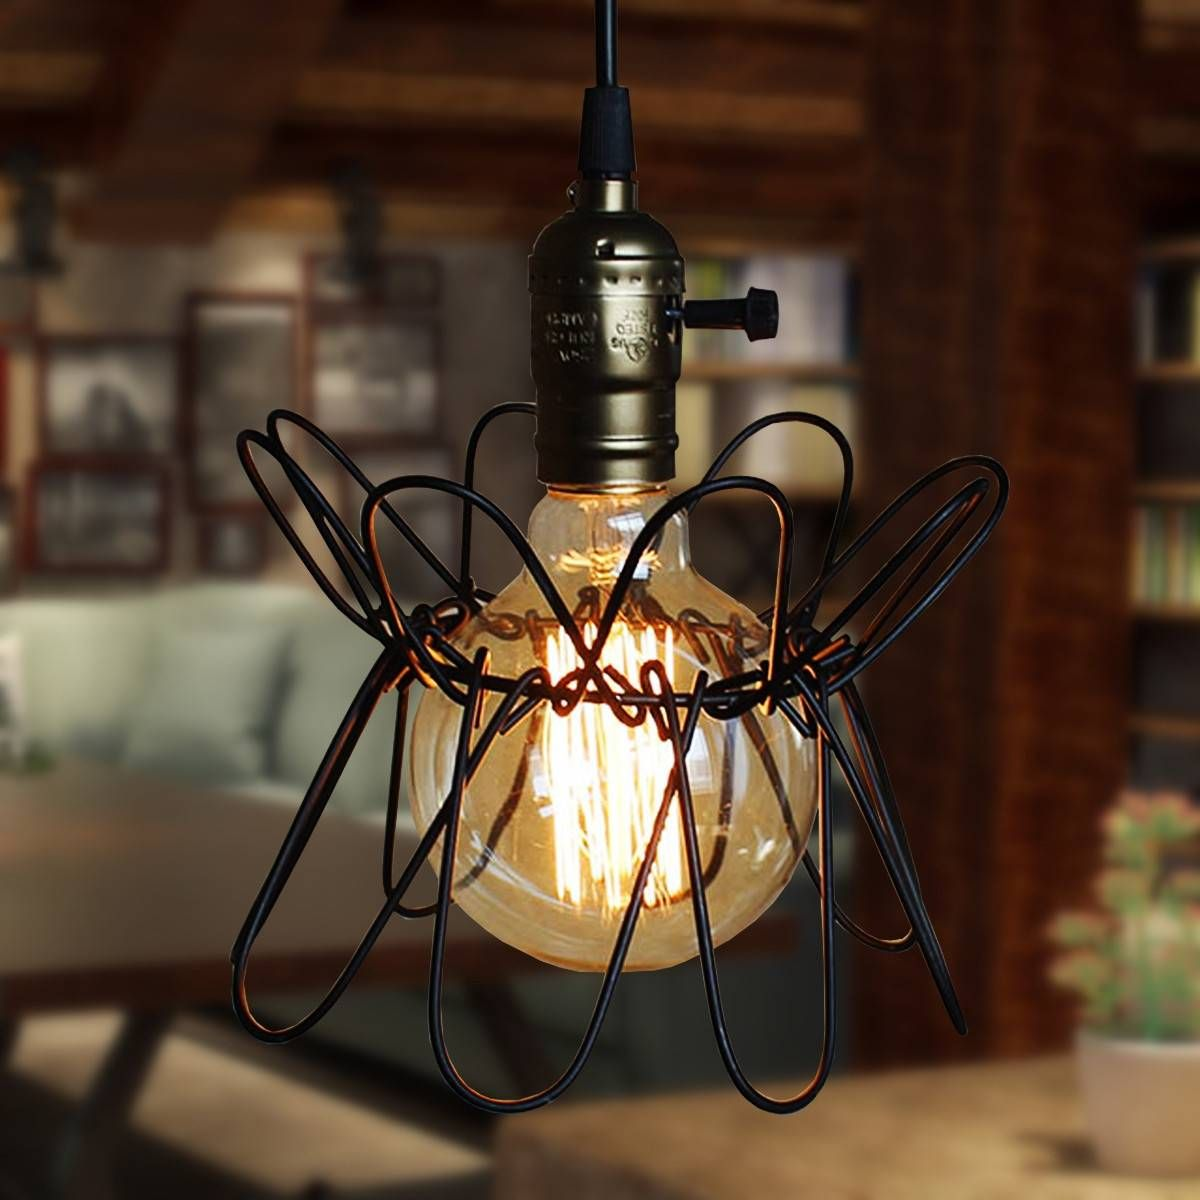 1pcs iron wire cage lampshade chandelier bird retro black bar coffee 1pcs iron wire cage lampshade chandelier bird retro black bar coffee home hanging ornament decor greentooth Image collections